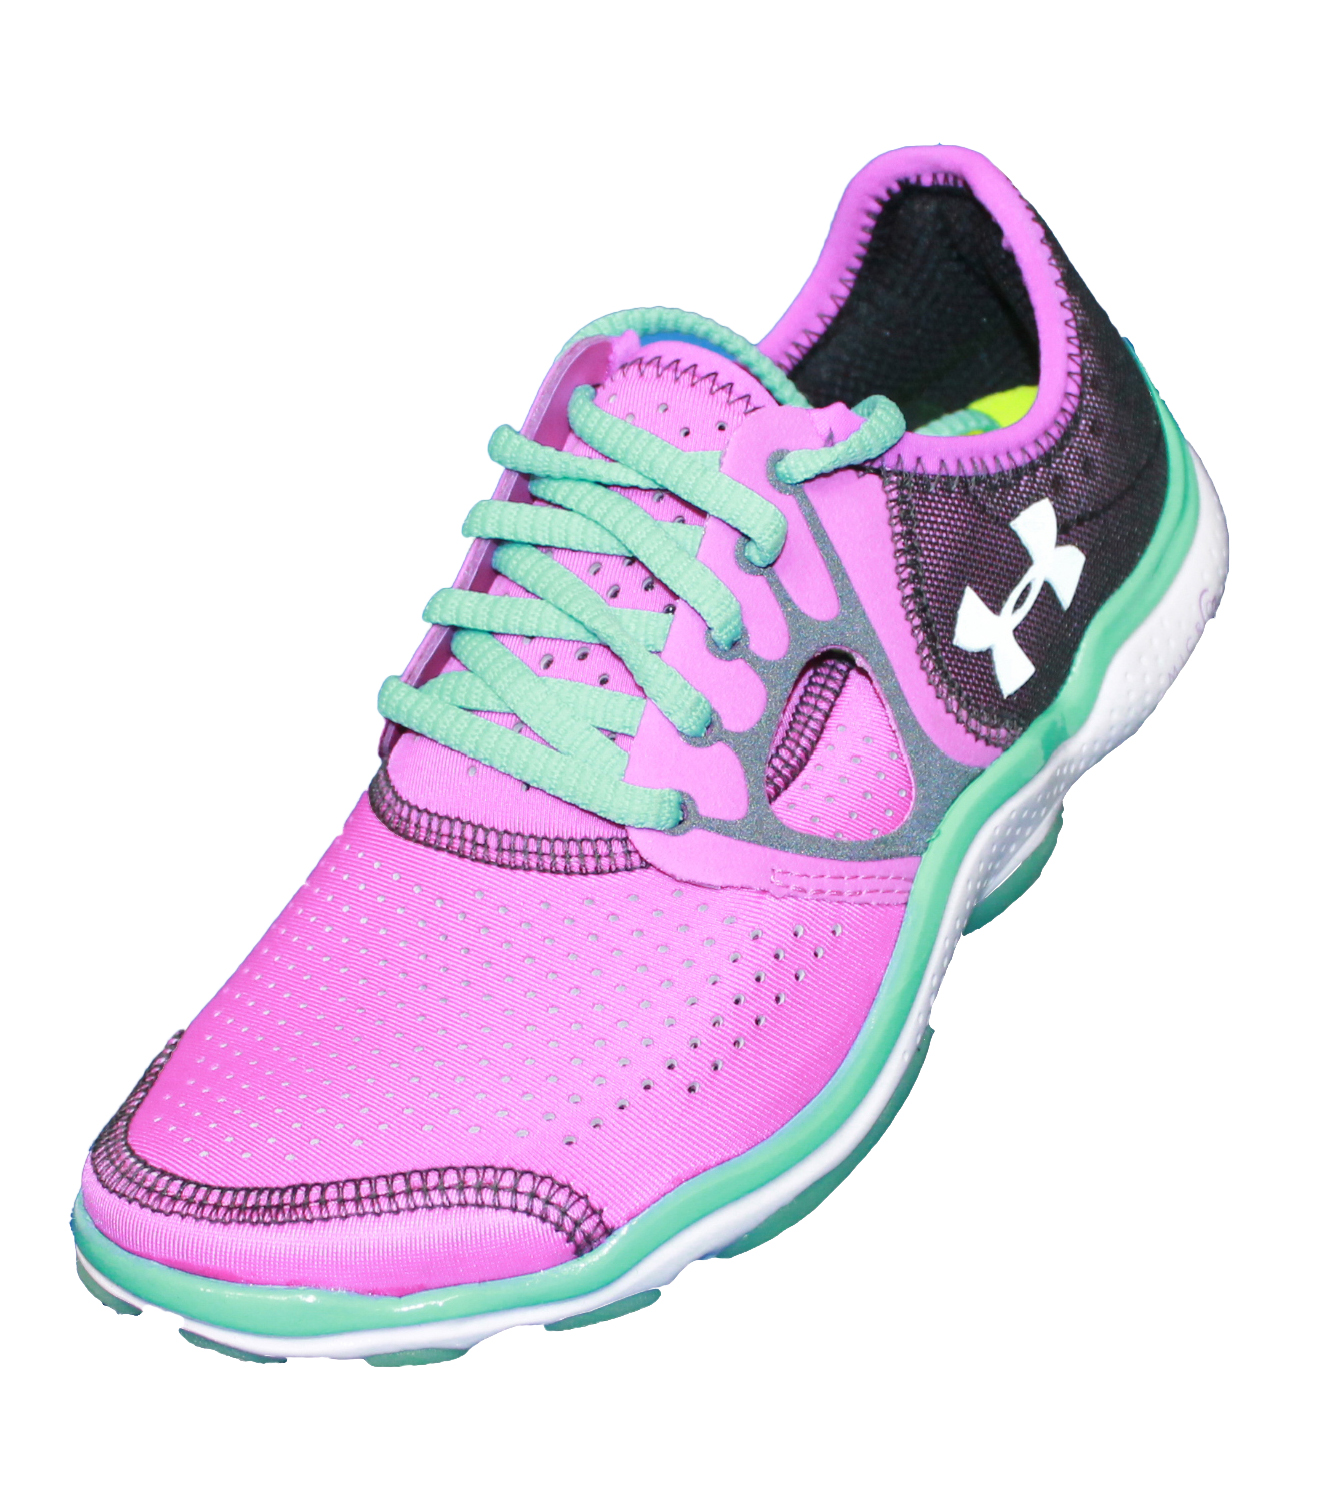 Under Armour Women's FTHR Radiate Economical, stylish, and eye-catching shoes